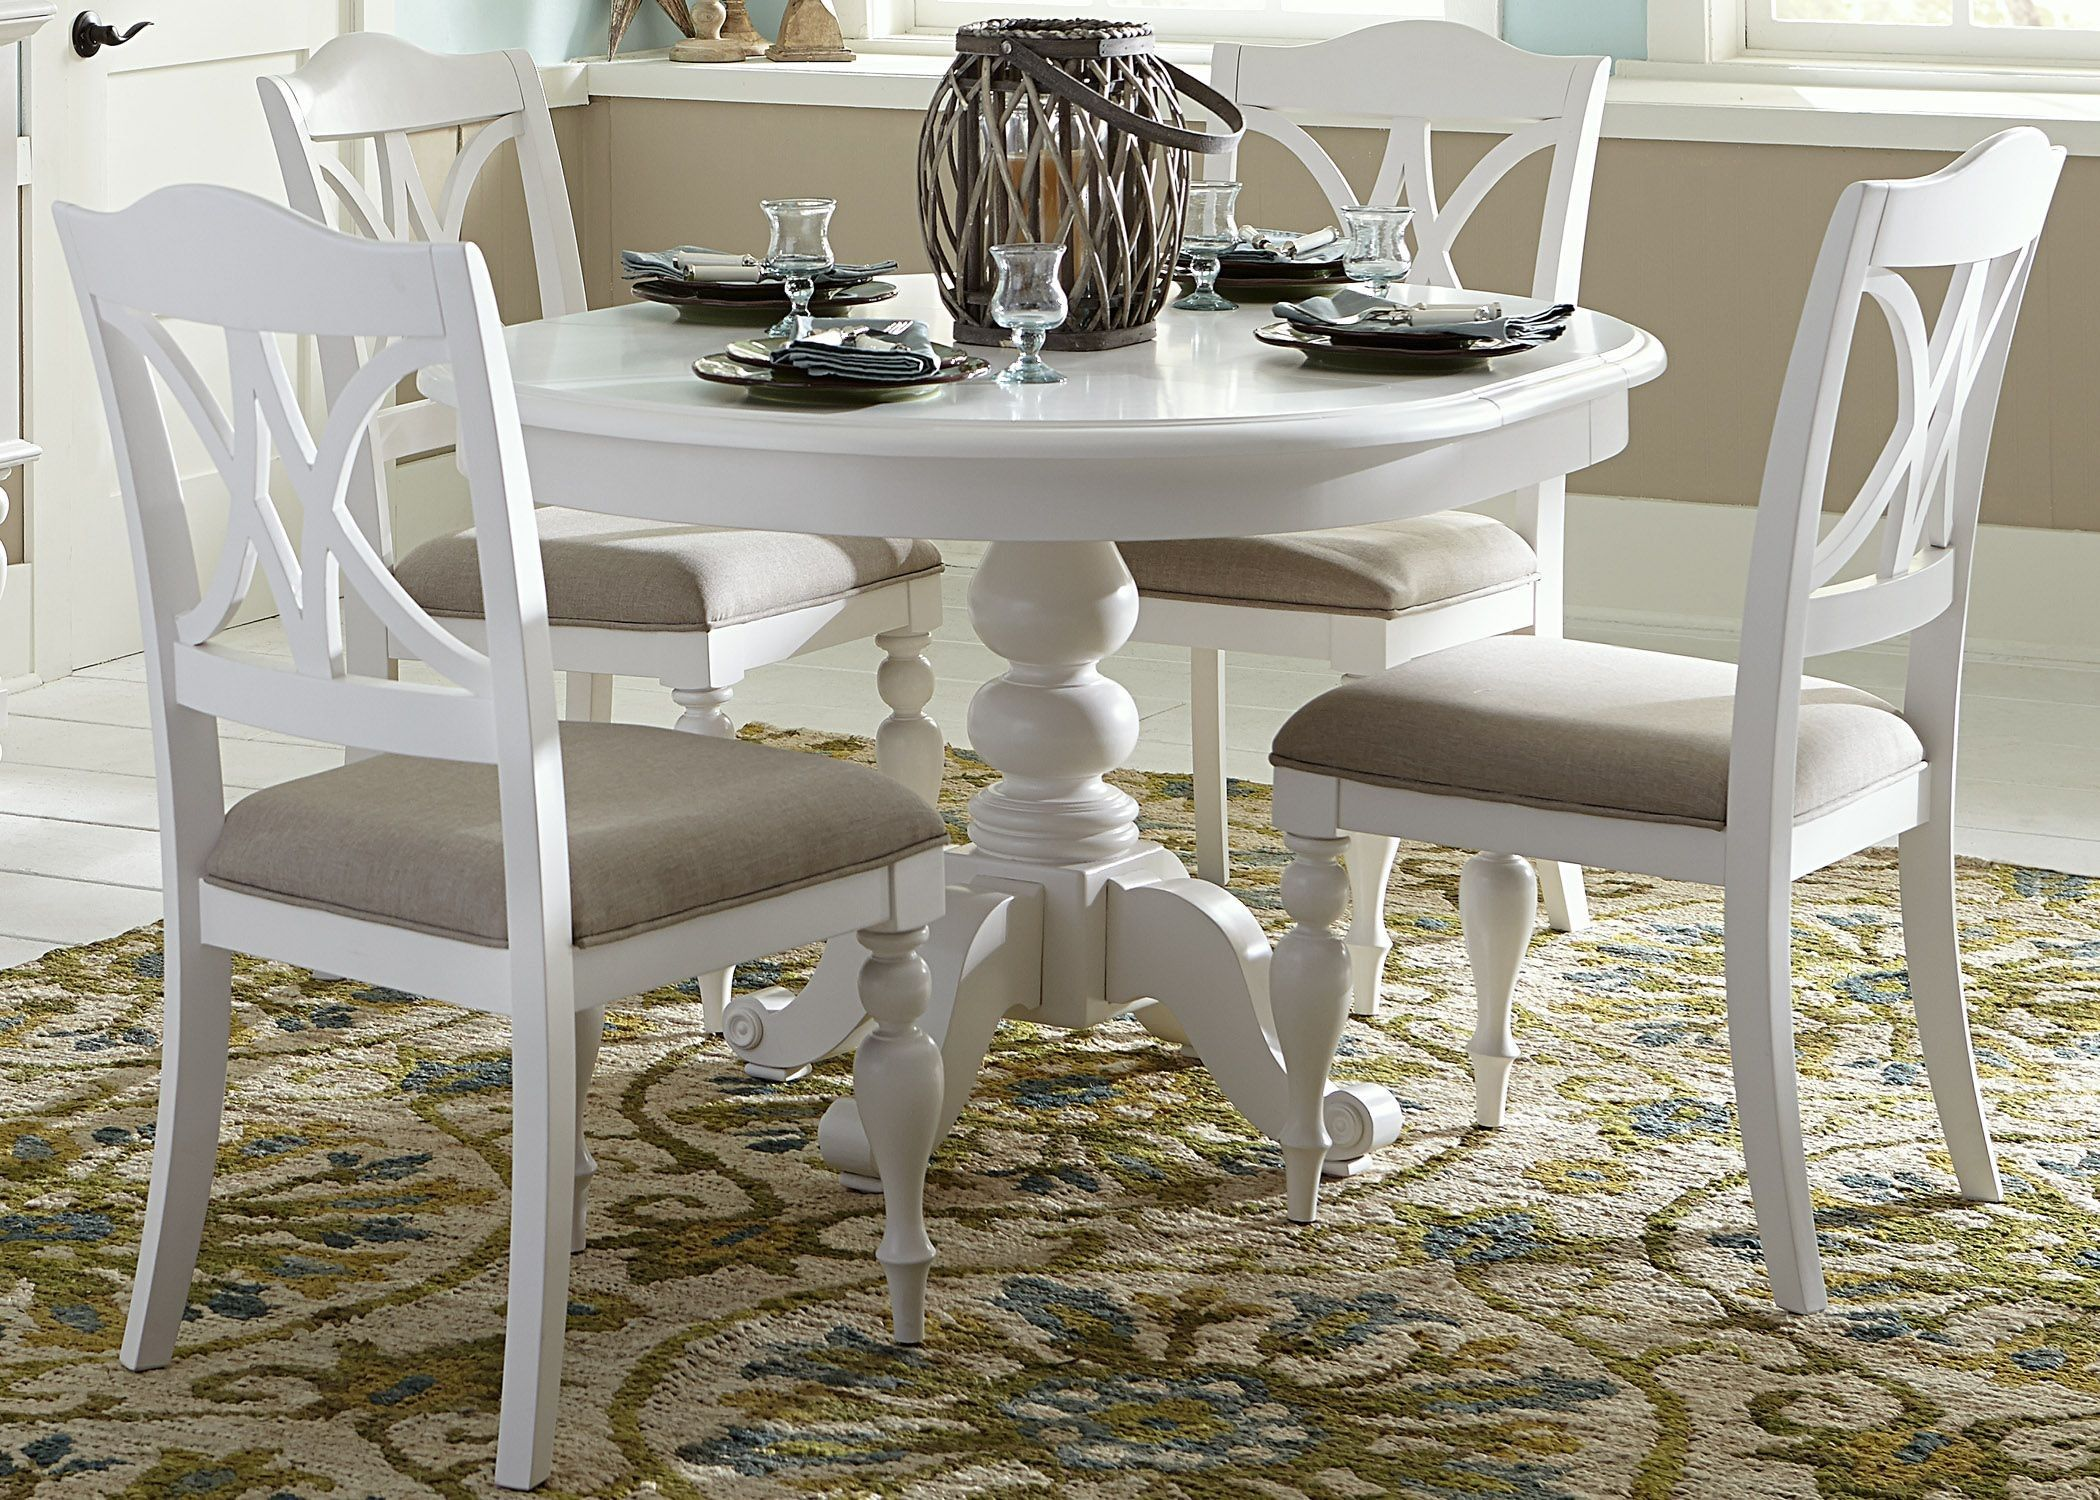 Summer House Oyster White Antique Round Pedestal Extendable Dining Room Set In 2021 Round Pedestal Dining Kitchen Table Settings Round Pedestal Dining Table White round kitchen tables